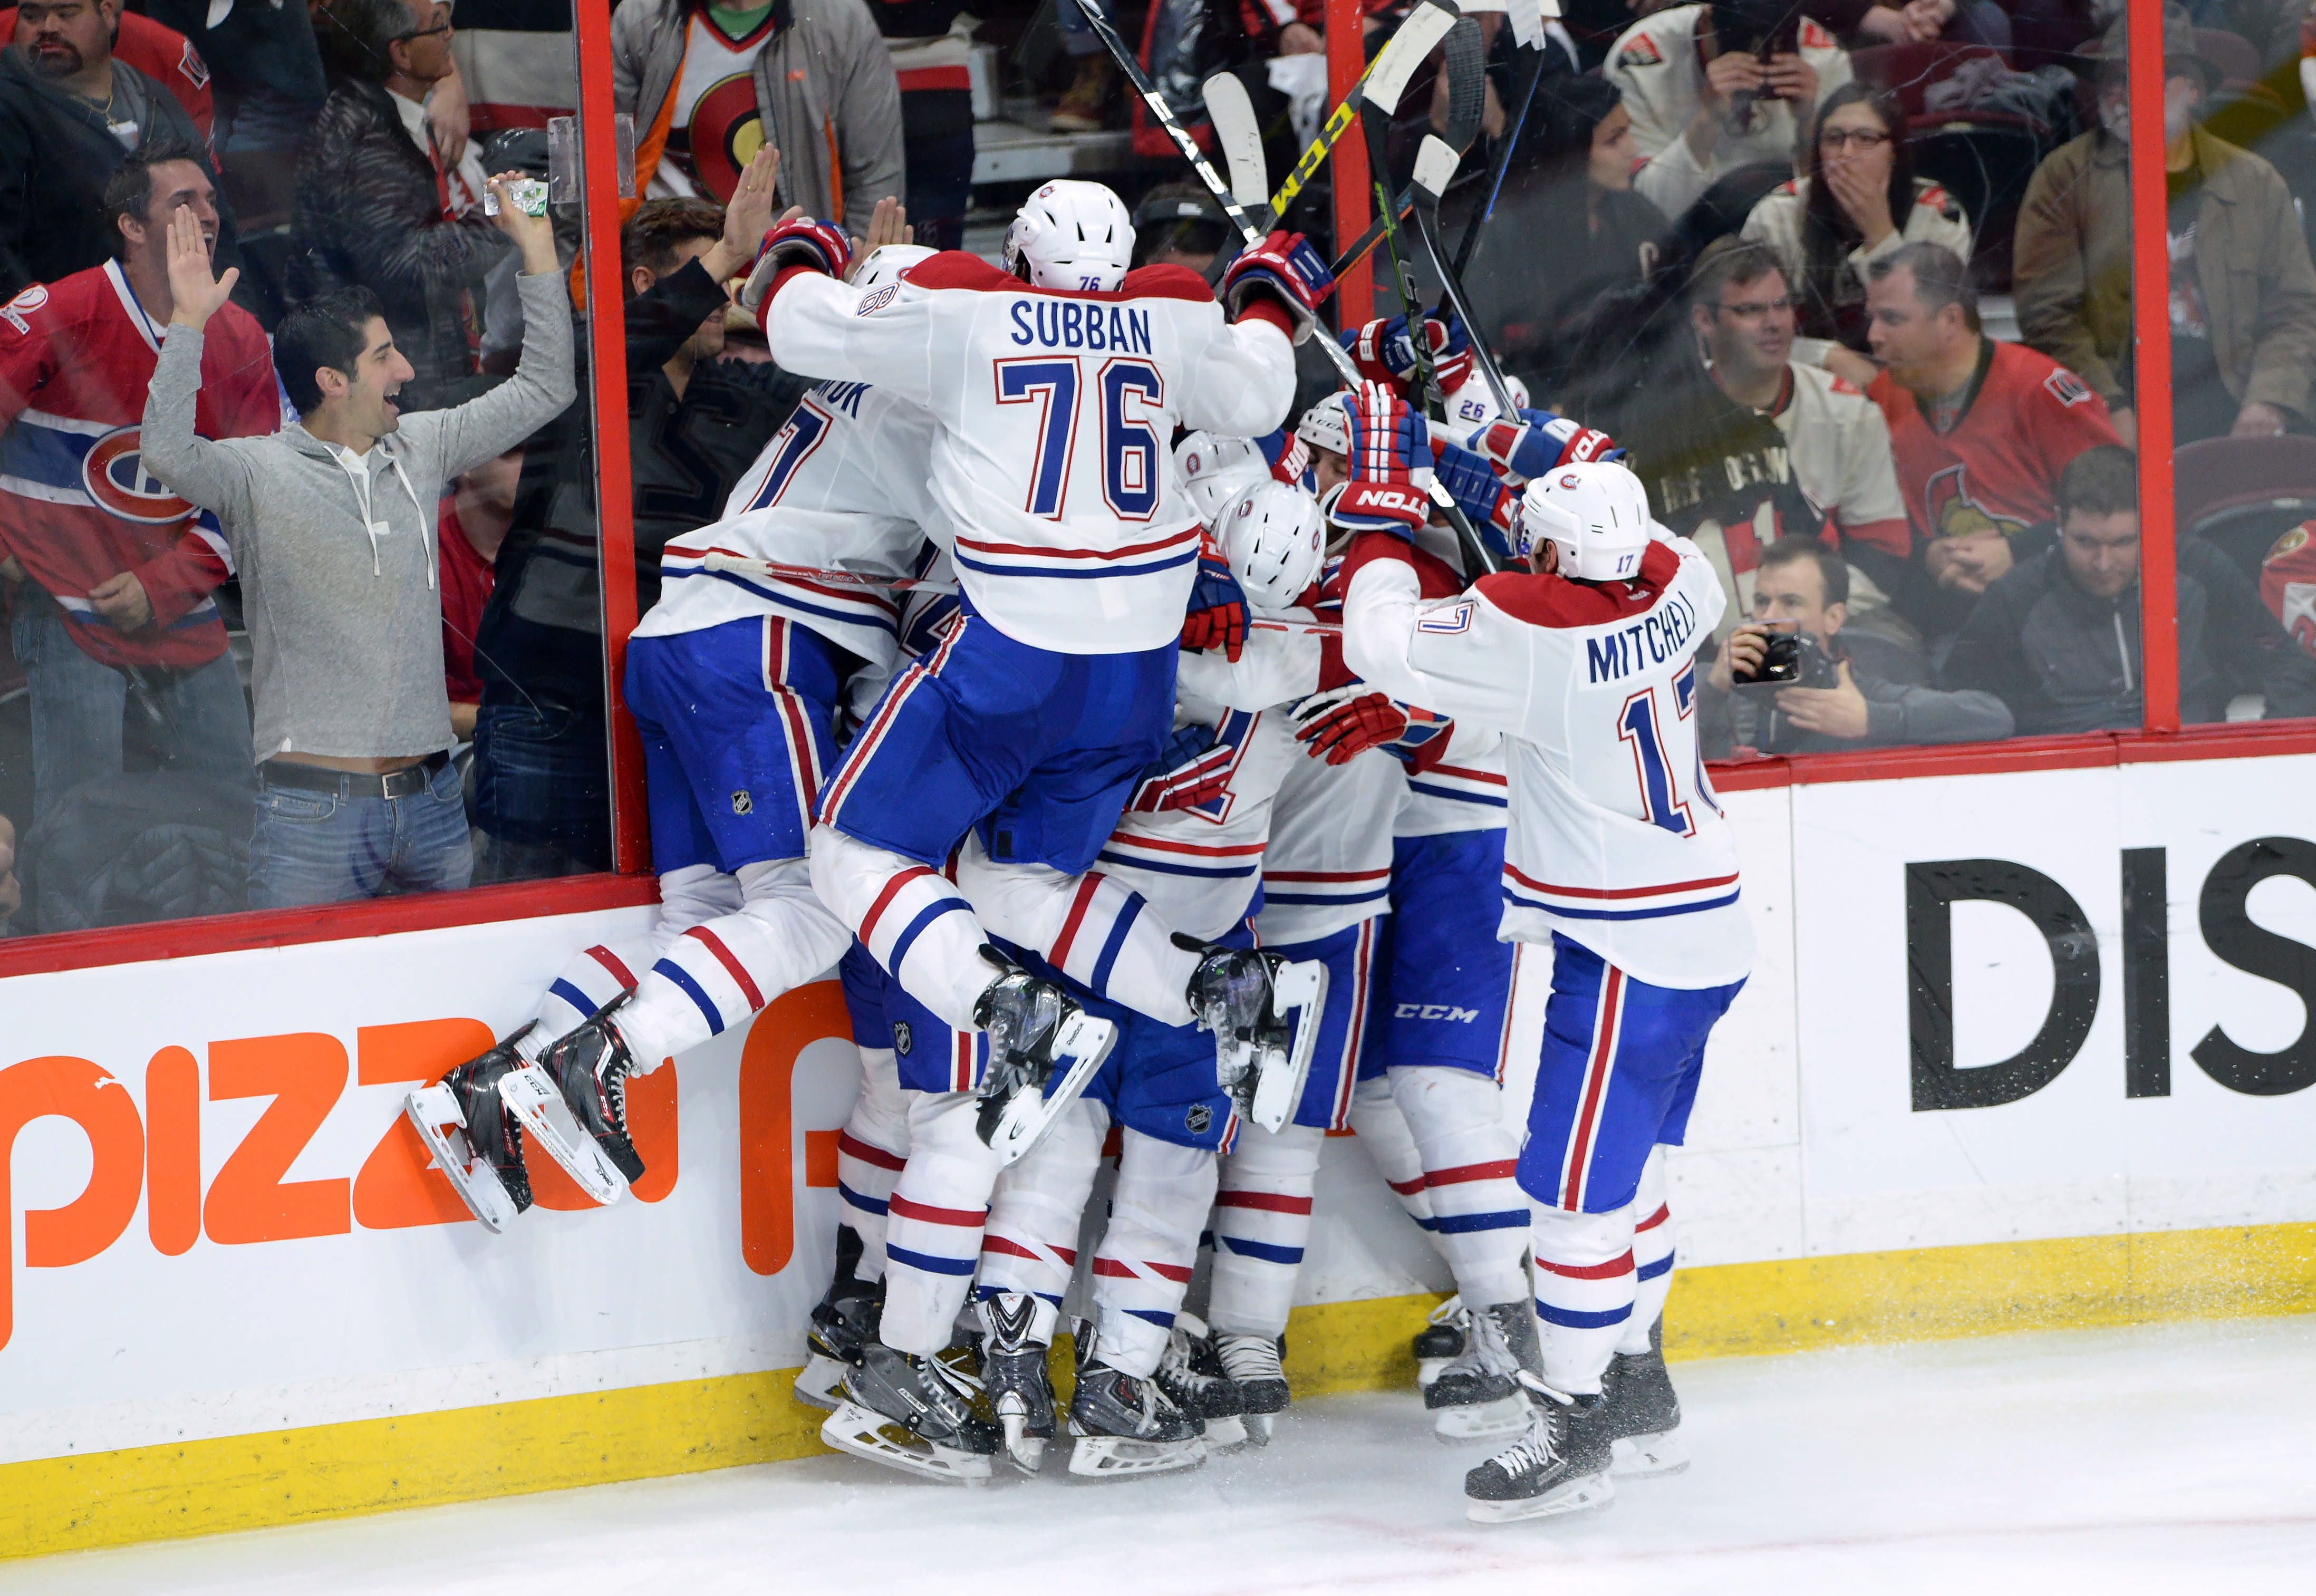 The Montreal Canadiens celebrate their sudden death overtime win over the Ottawa Senators in game 3 of first round Stanley Cup NHL playoff hockey action in Ottawa, Ontario, on Sunday, April 19, 2015.  (Sean Kirkpatrick/The Canadian Press via AP)   MANDATO